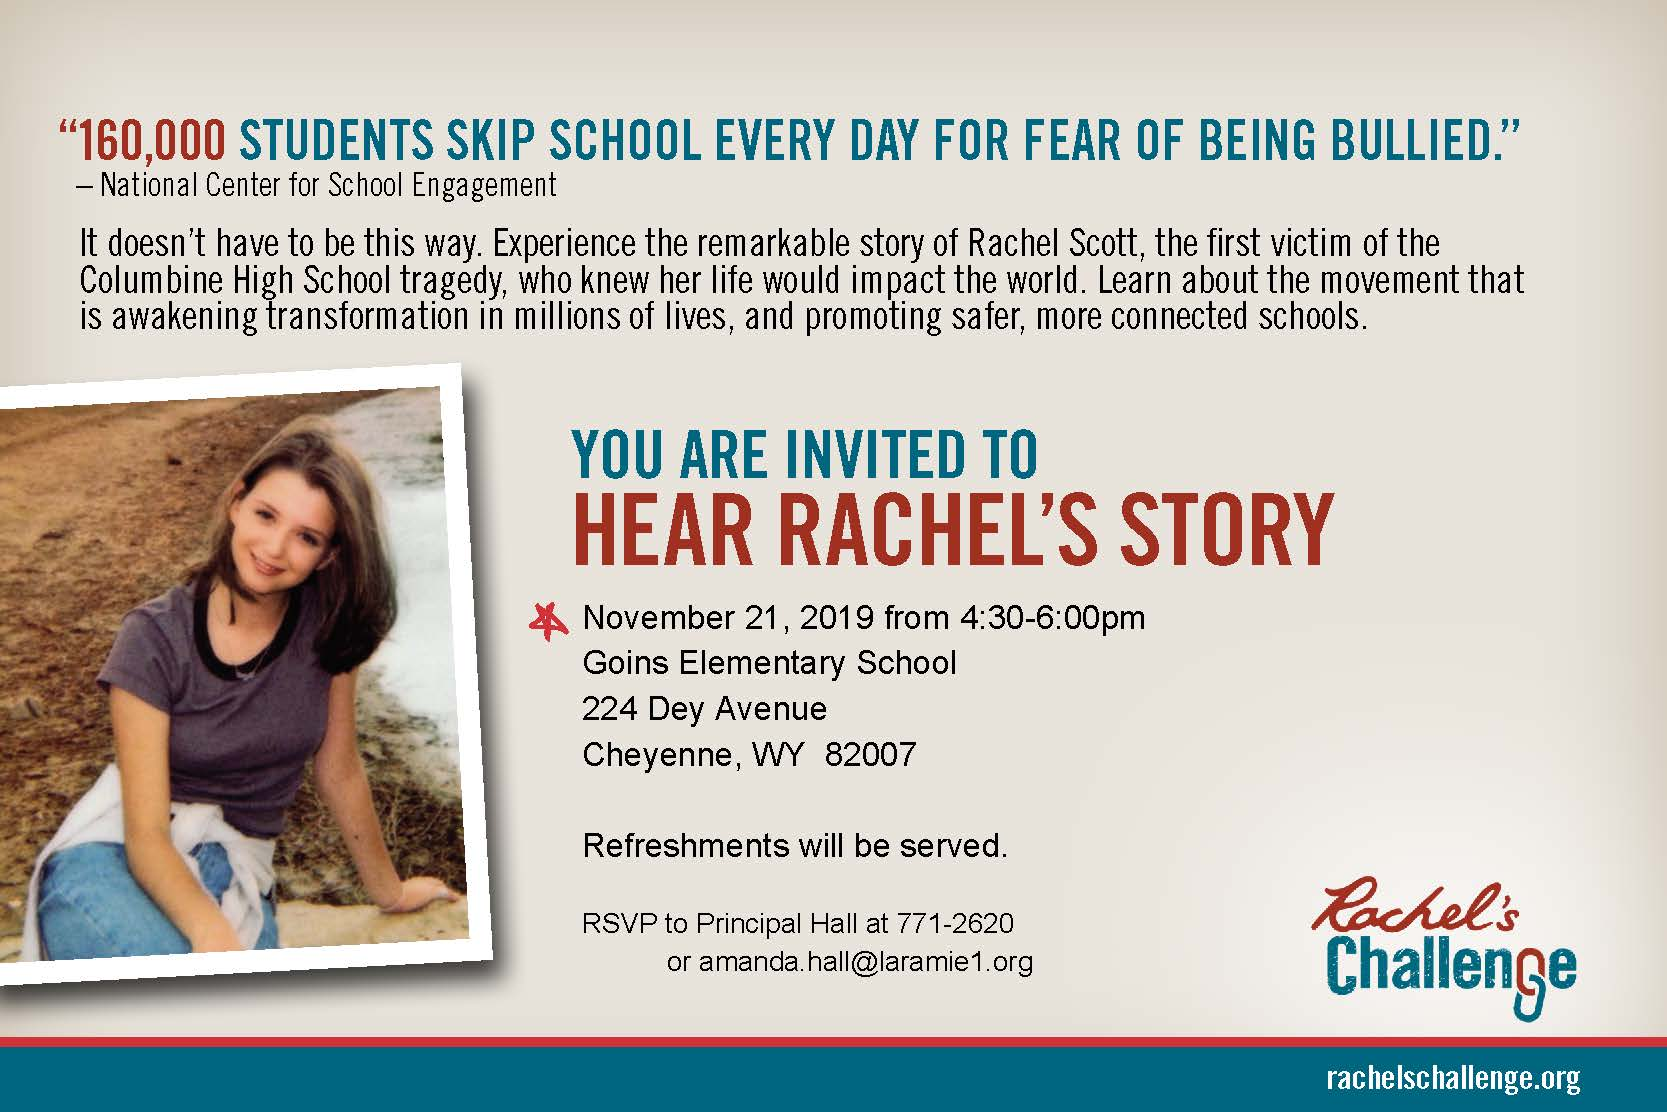 Story Of Rachel S Challenge To Be Told At Cheyenne